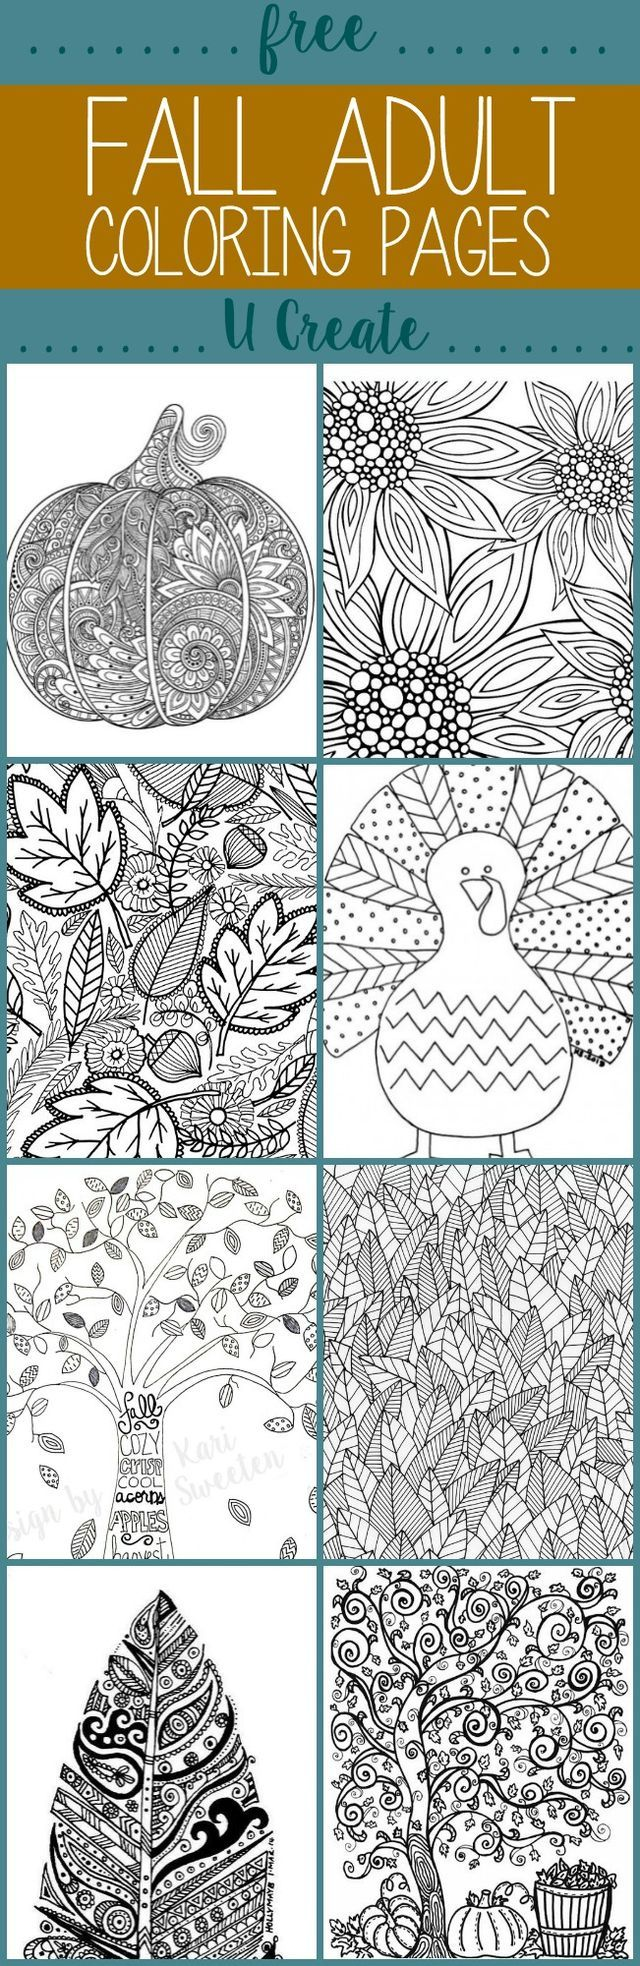 Free coloring pages for relaxation - Free Fall Adult Coloring Pages U Create